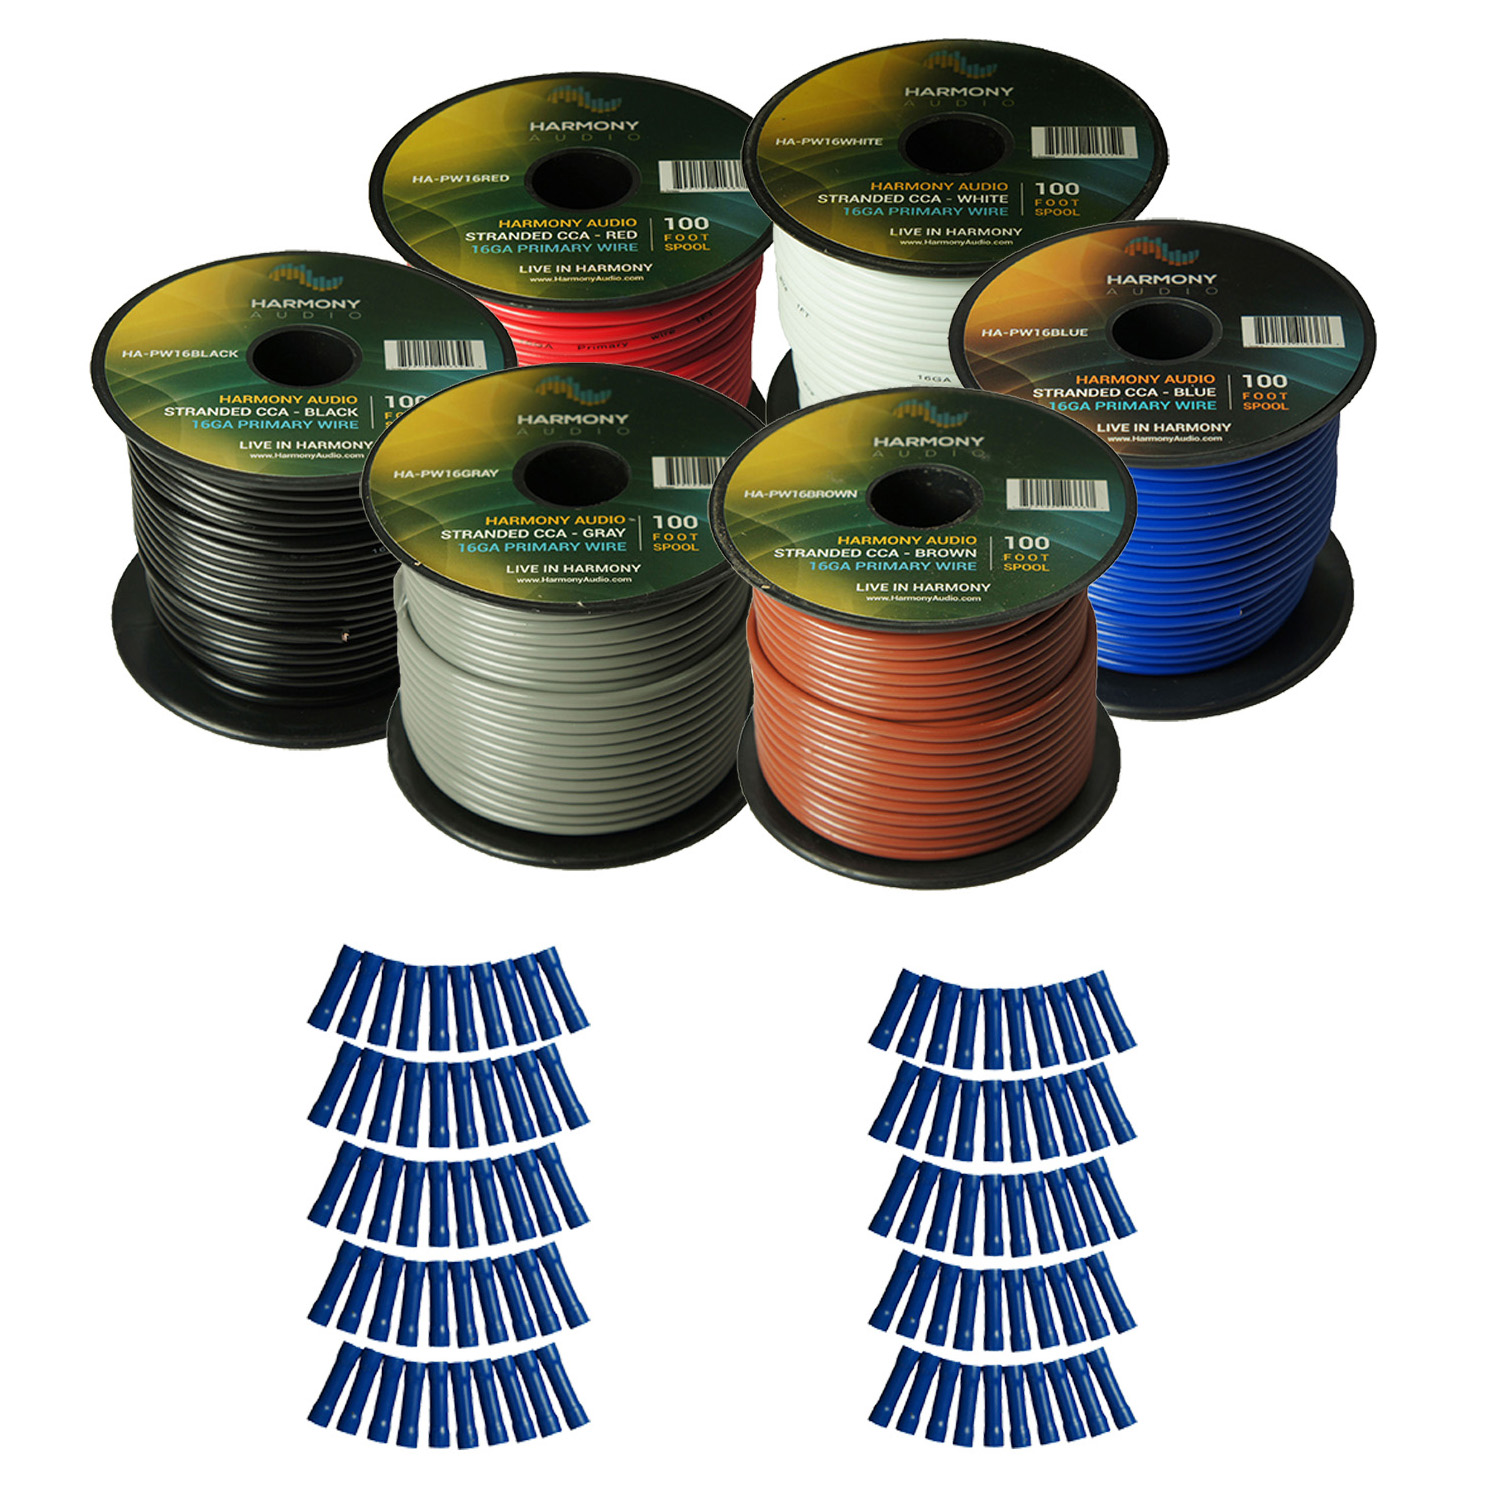 Harmony Audio Primary Single Conductor 16 Gauge Power or Ground Wire - 6 Rolls - 600 Feet - 6 Color Mix for Car Audio / Trailer / Model Train / Remote